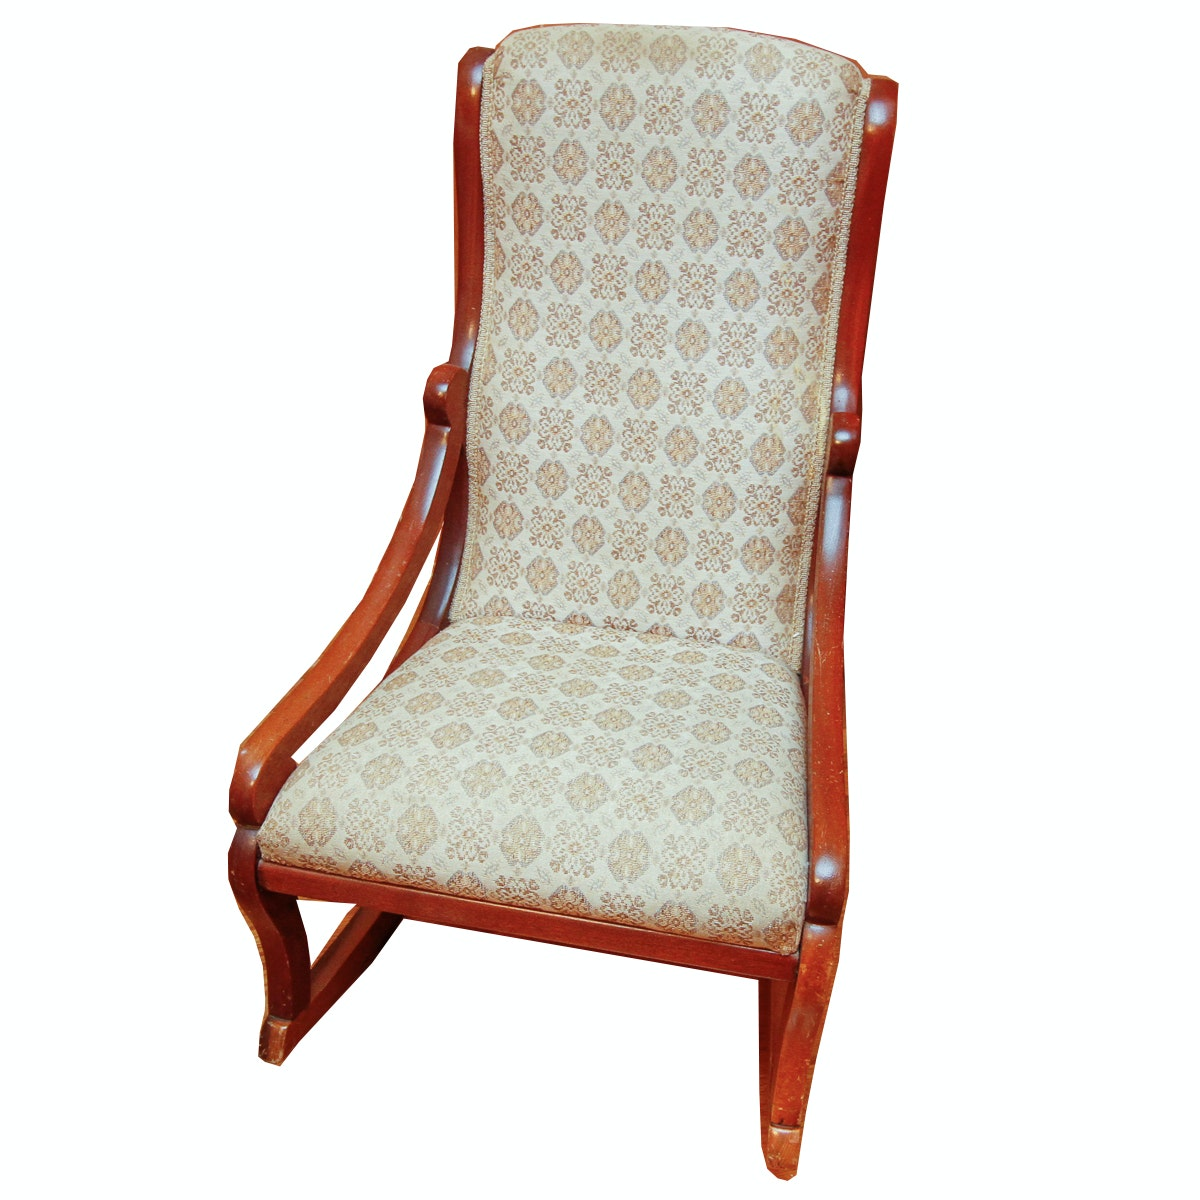 Vintage Oak and Upholstered Rocking Chair